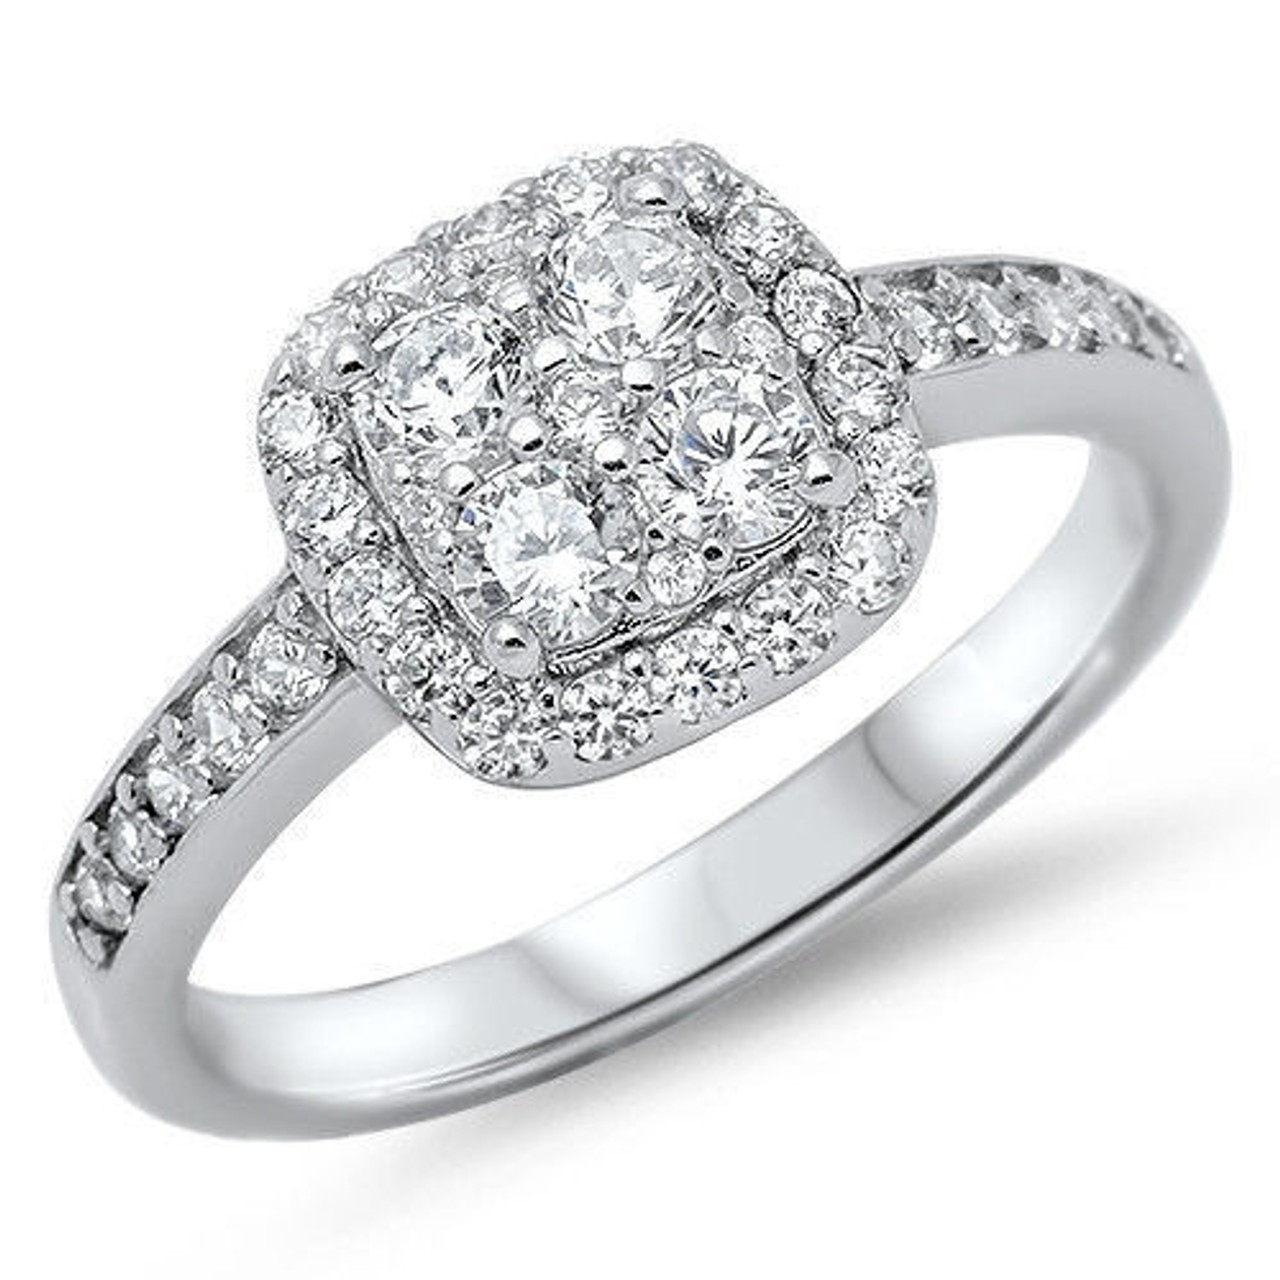 Personalized Quality .925 Sterling Silver Ring with Clear CZ Free Engraving